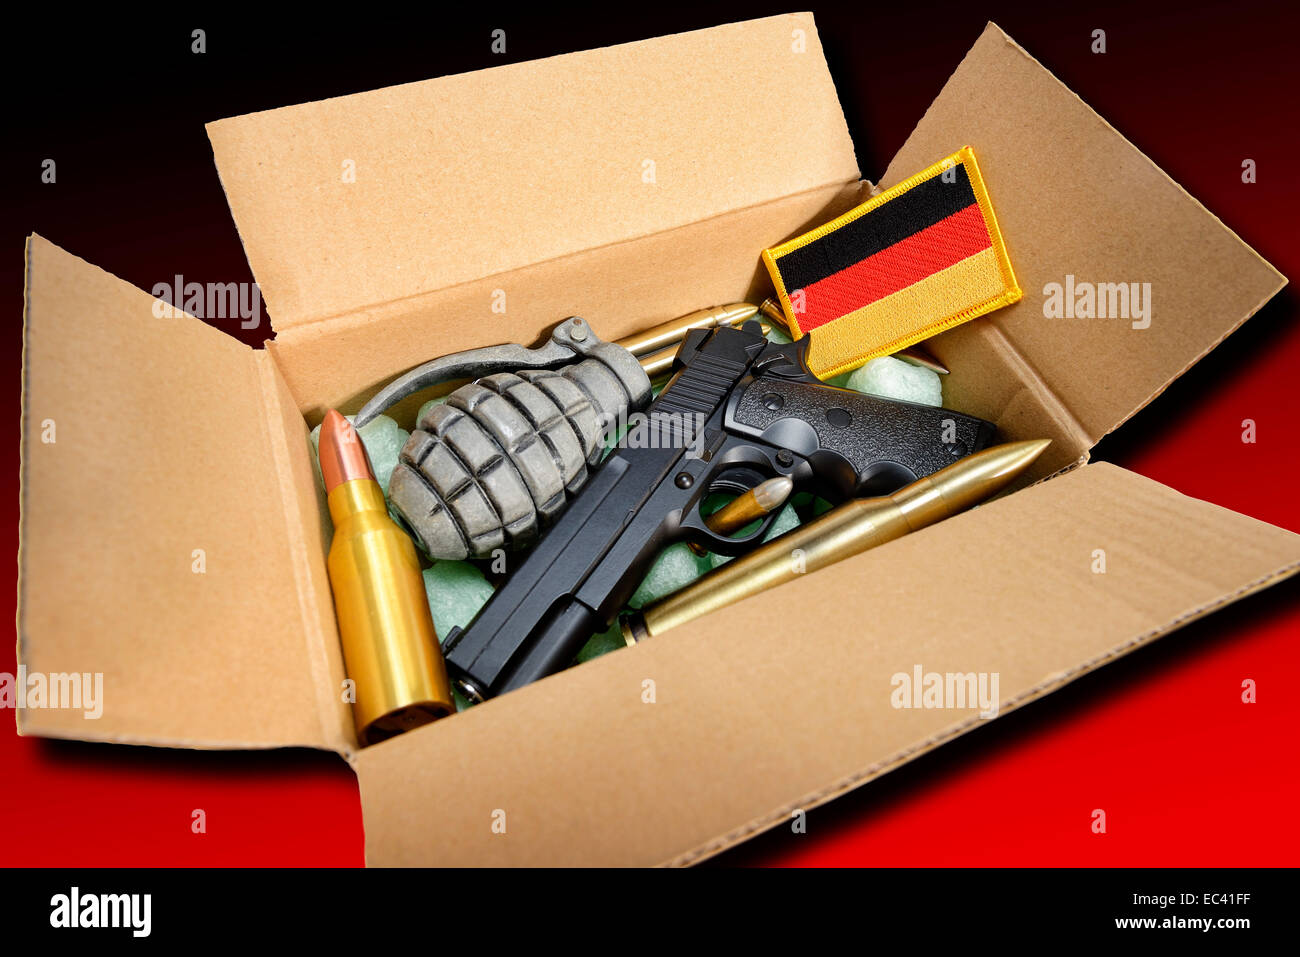 Weapons in a parcel, German delivery of arms - Stock Image